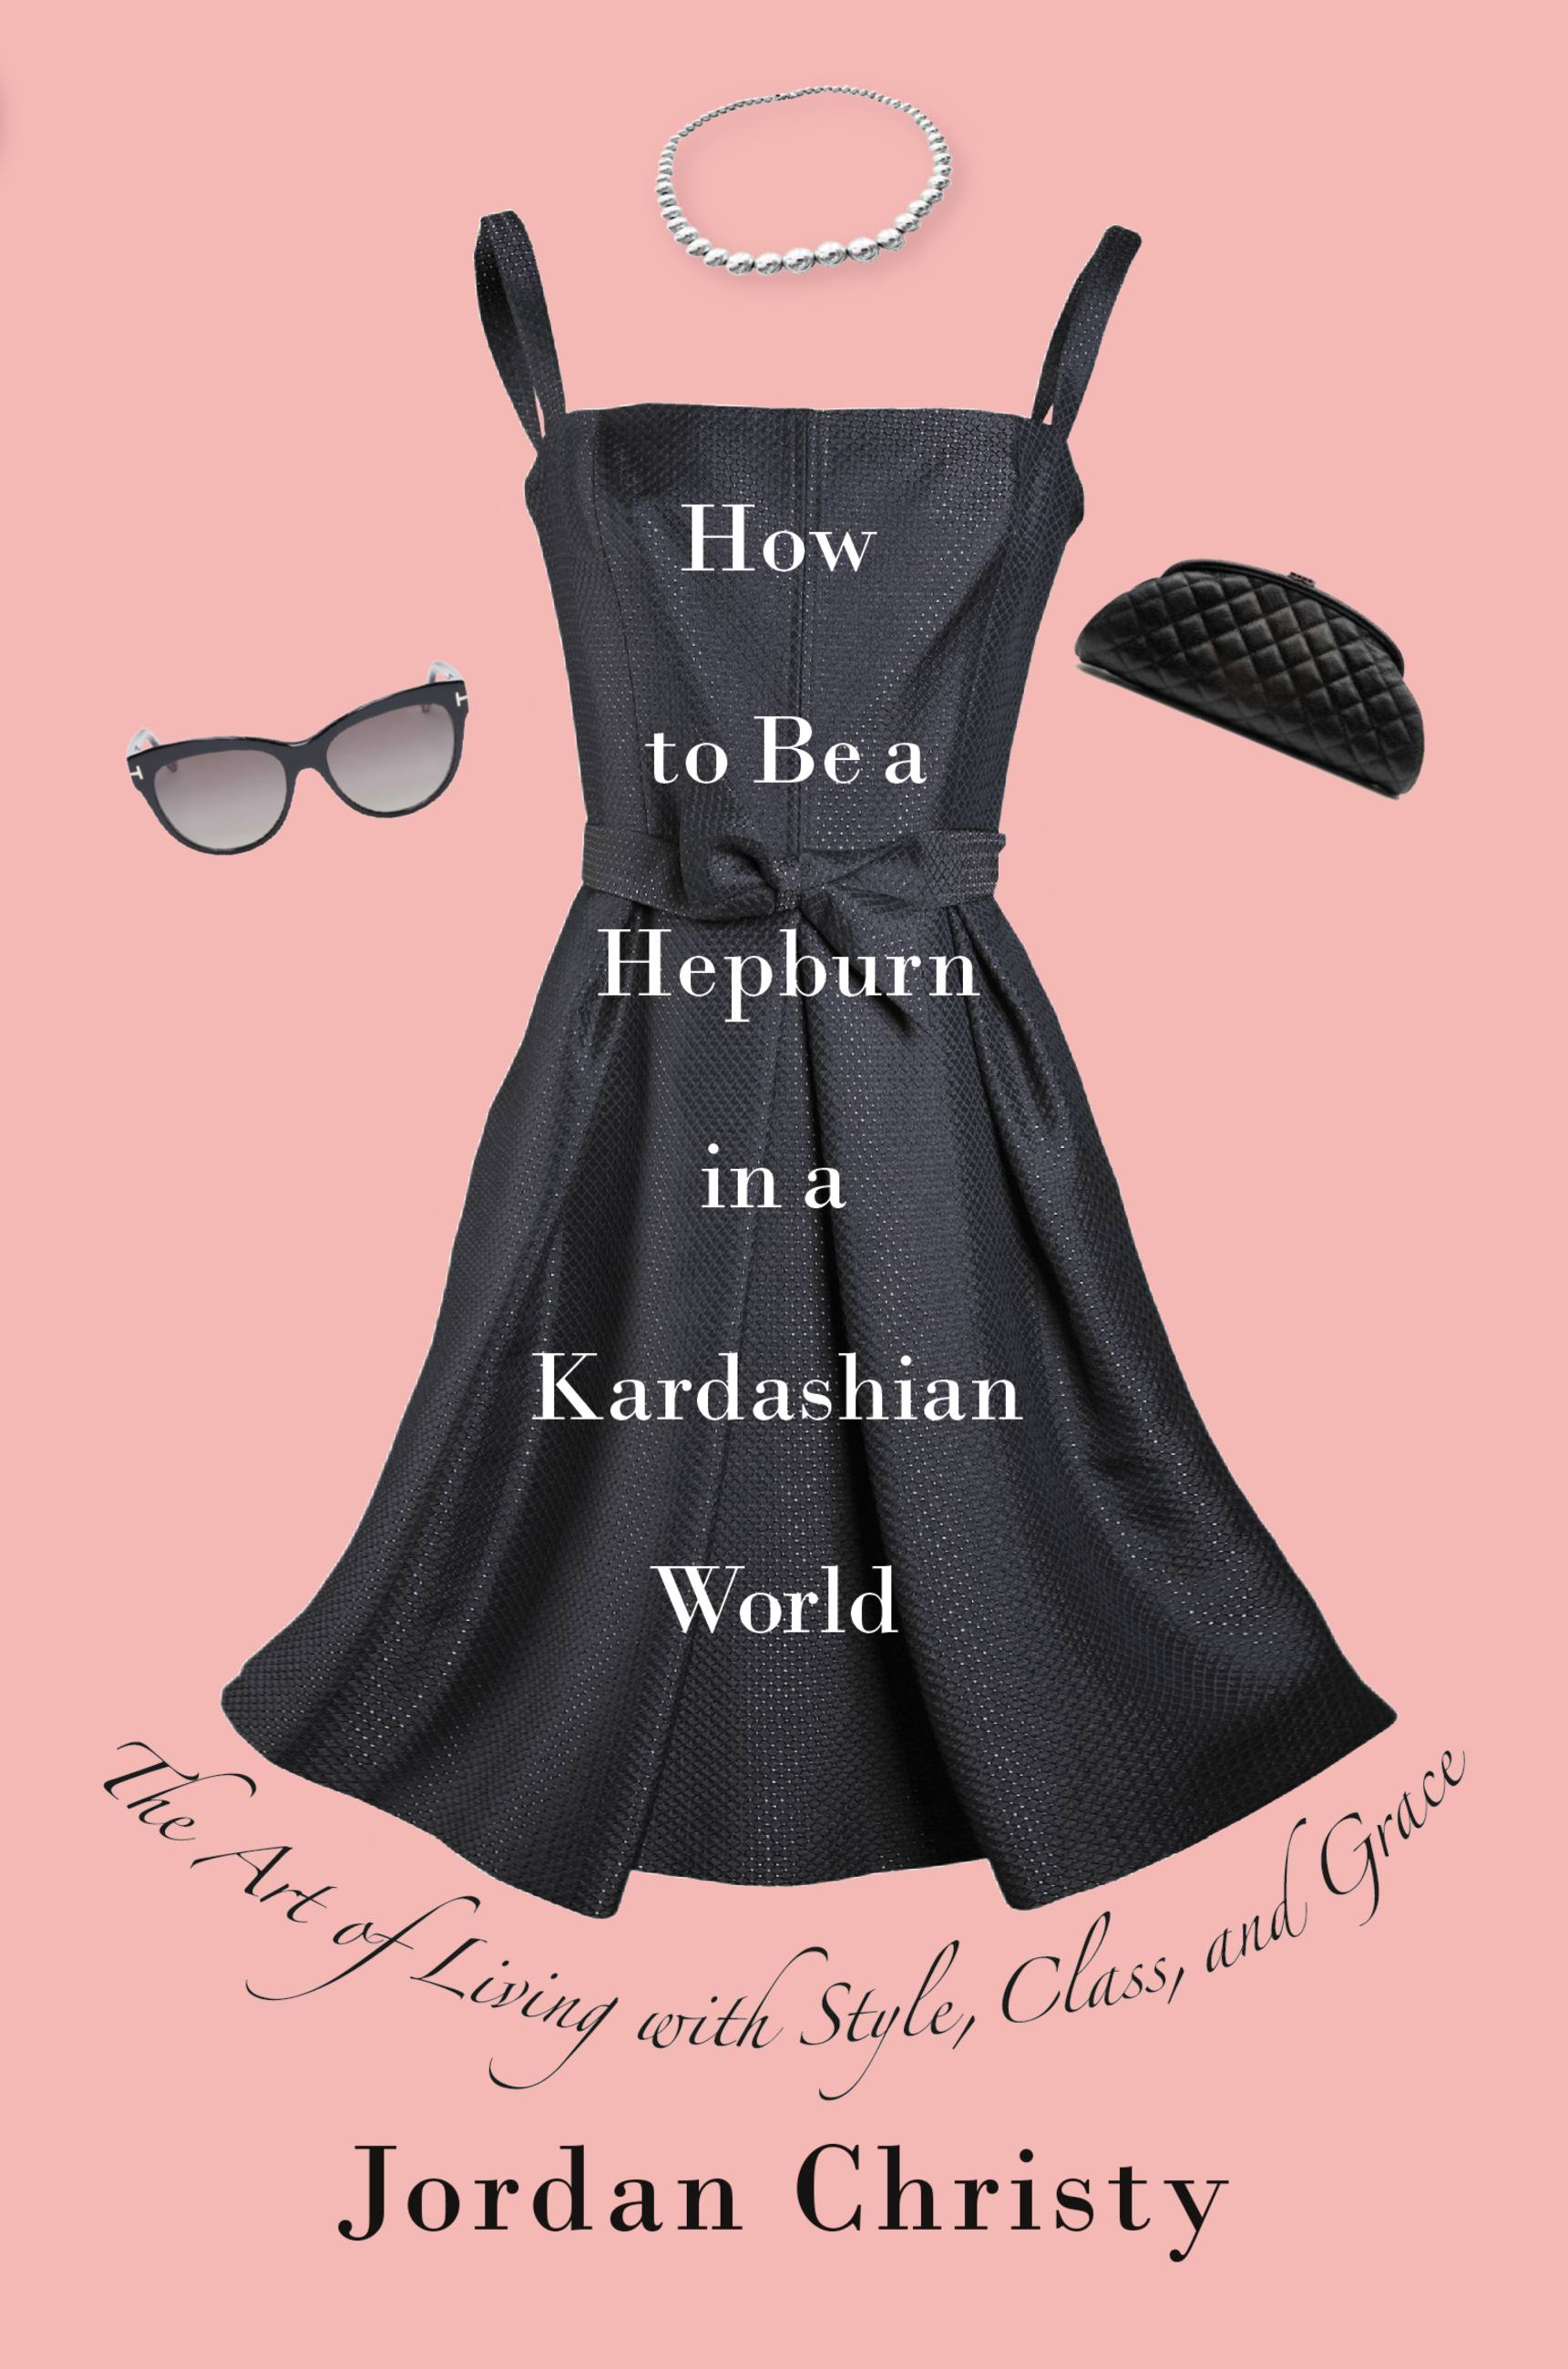 How to Be a Hepburn in a Kardashian World The Art of Living with Style, Class, and Grace